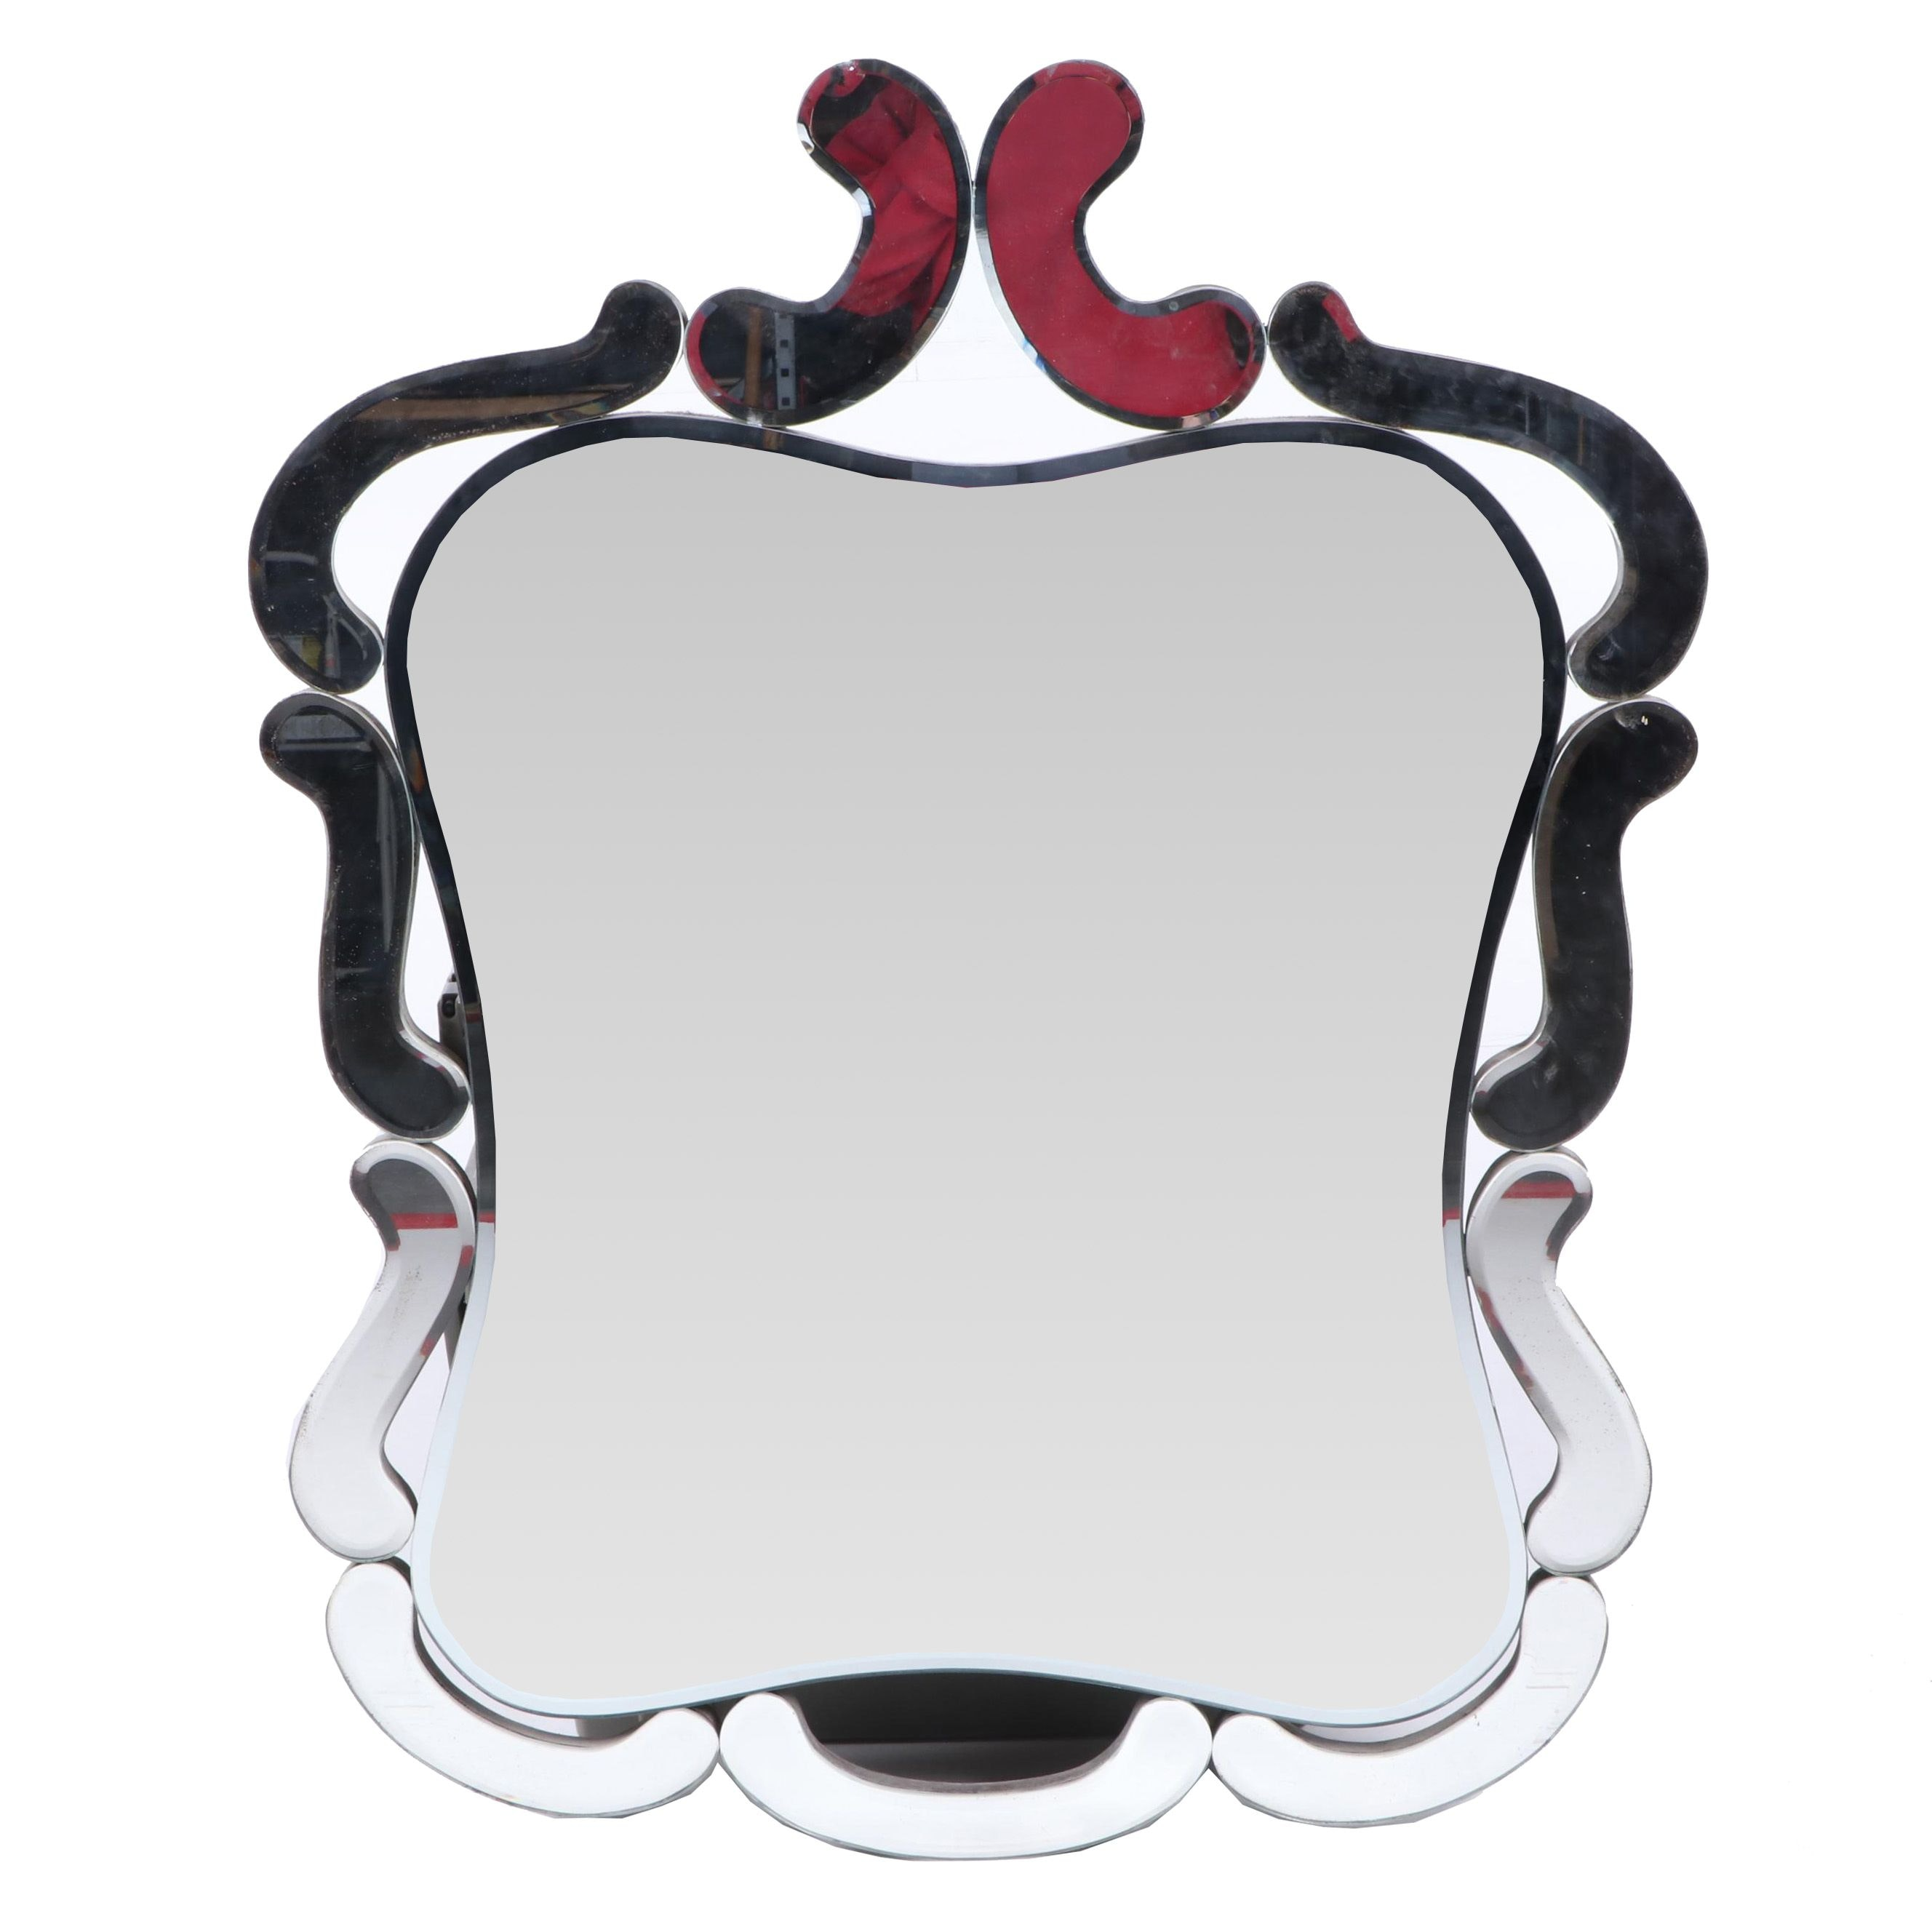 Decorative Wall Mirror with Cutout Frame